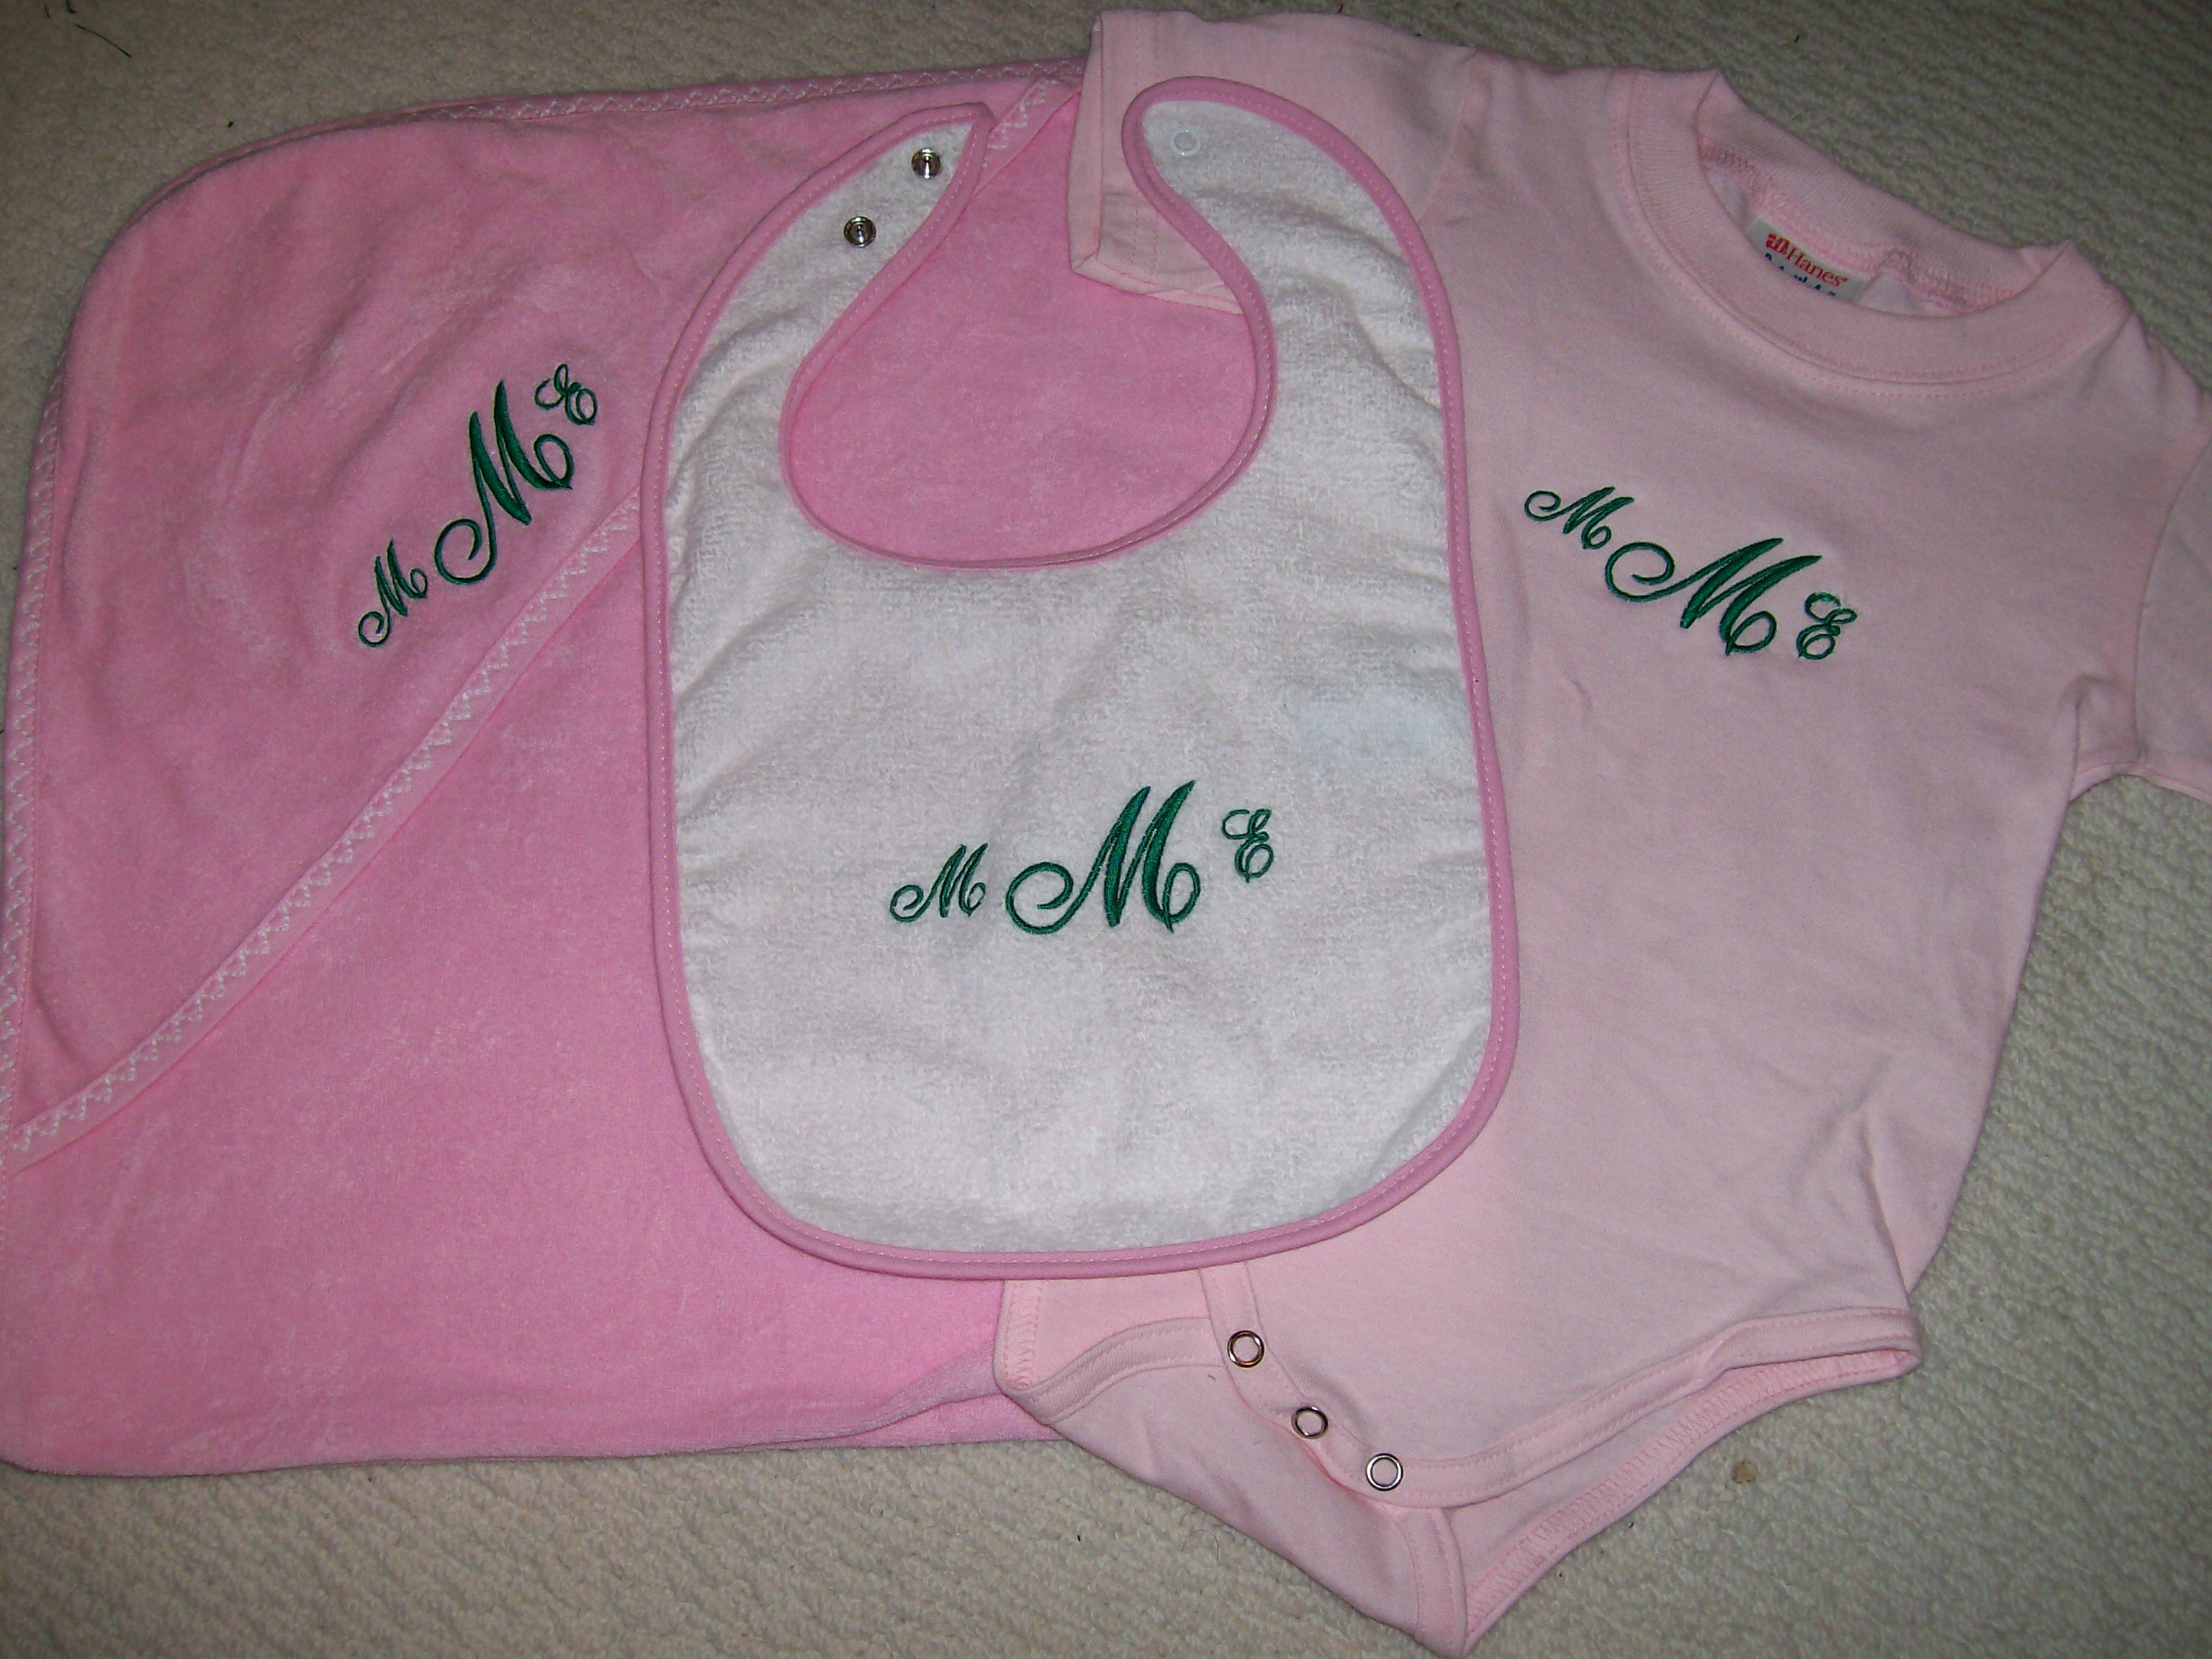 Bib, Onesie, Hooded towel